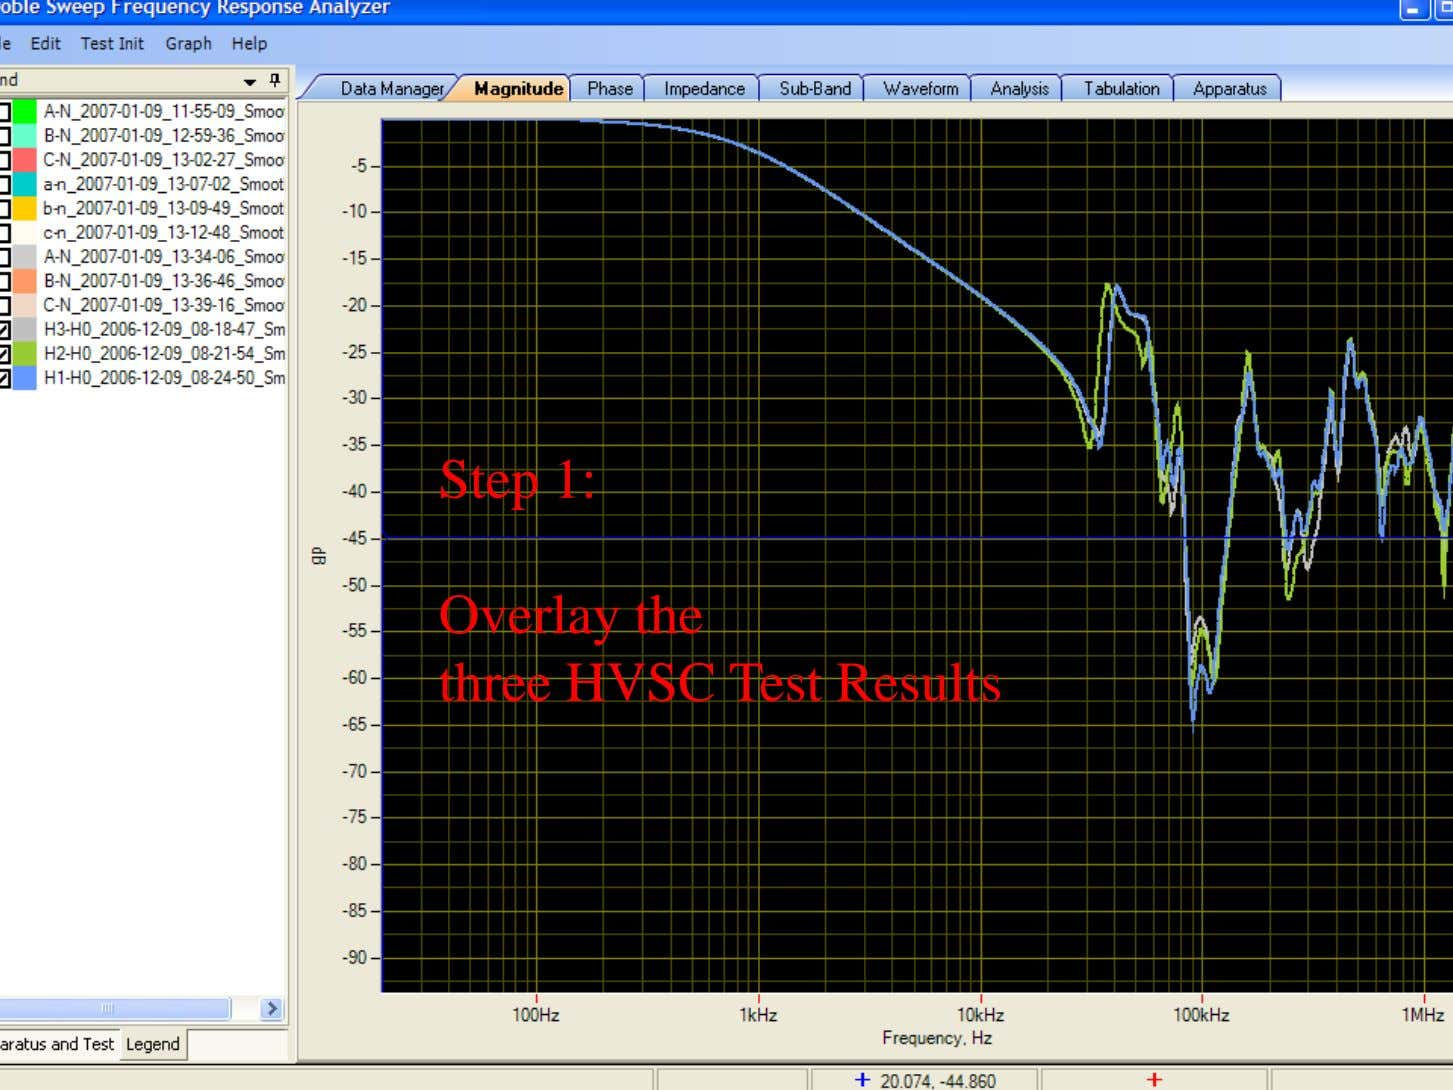 Step 1: Overlay the three HVSC Test Results